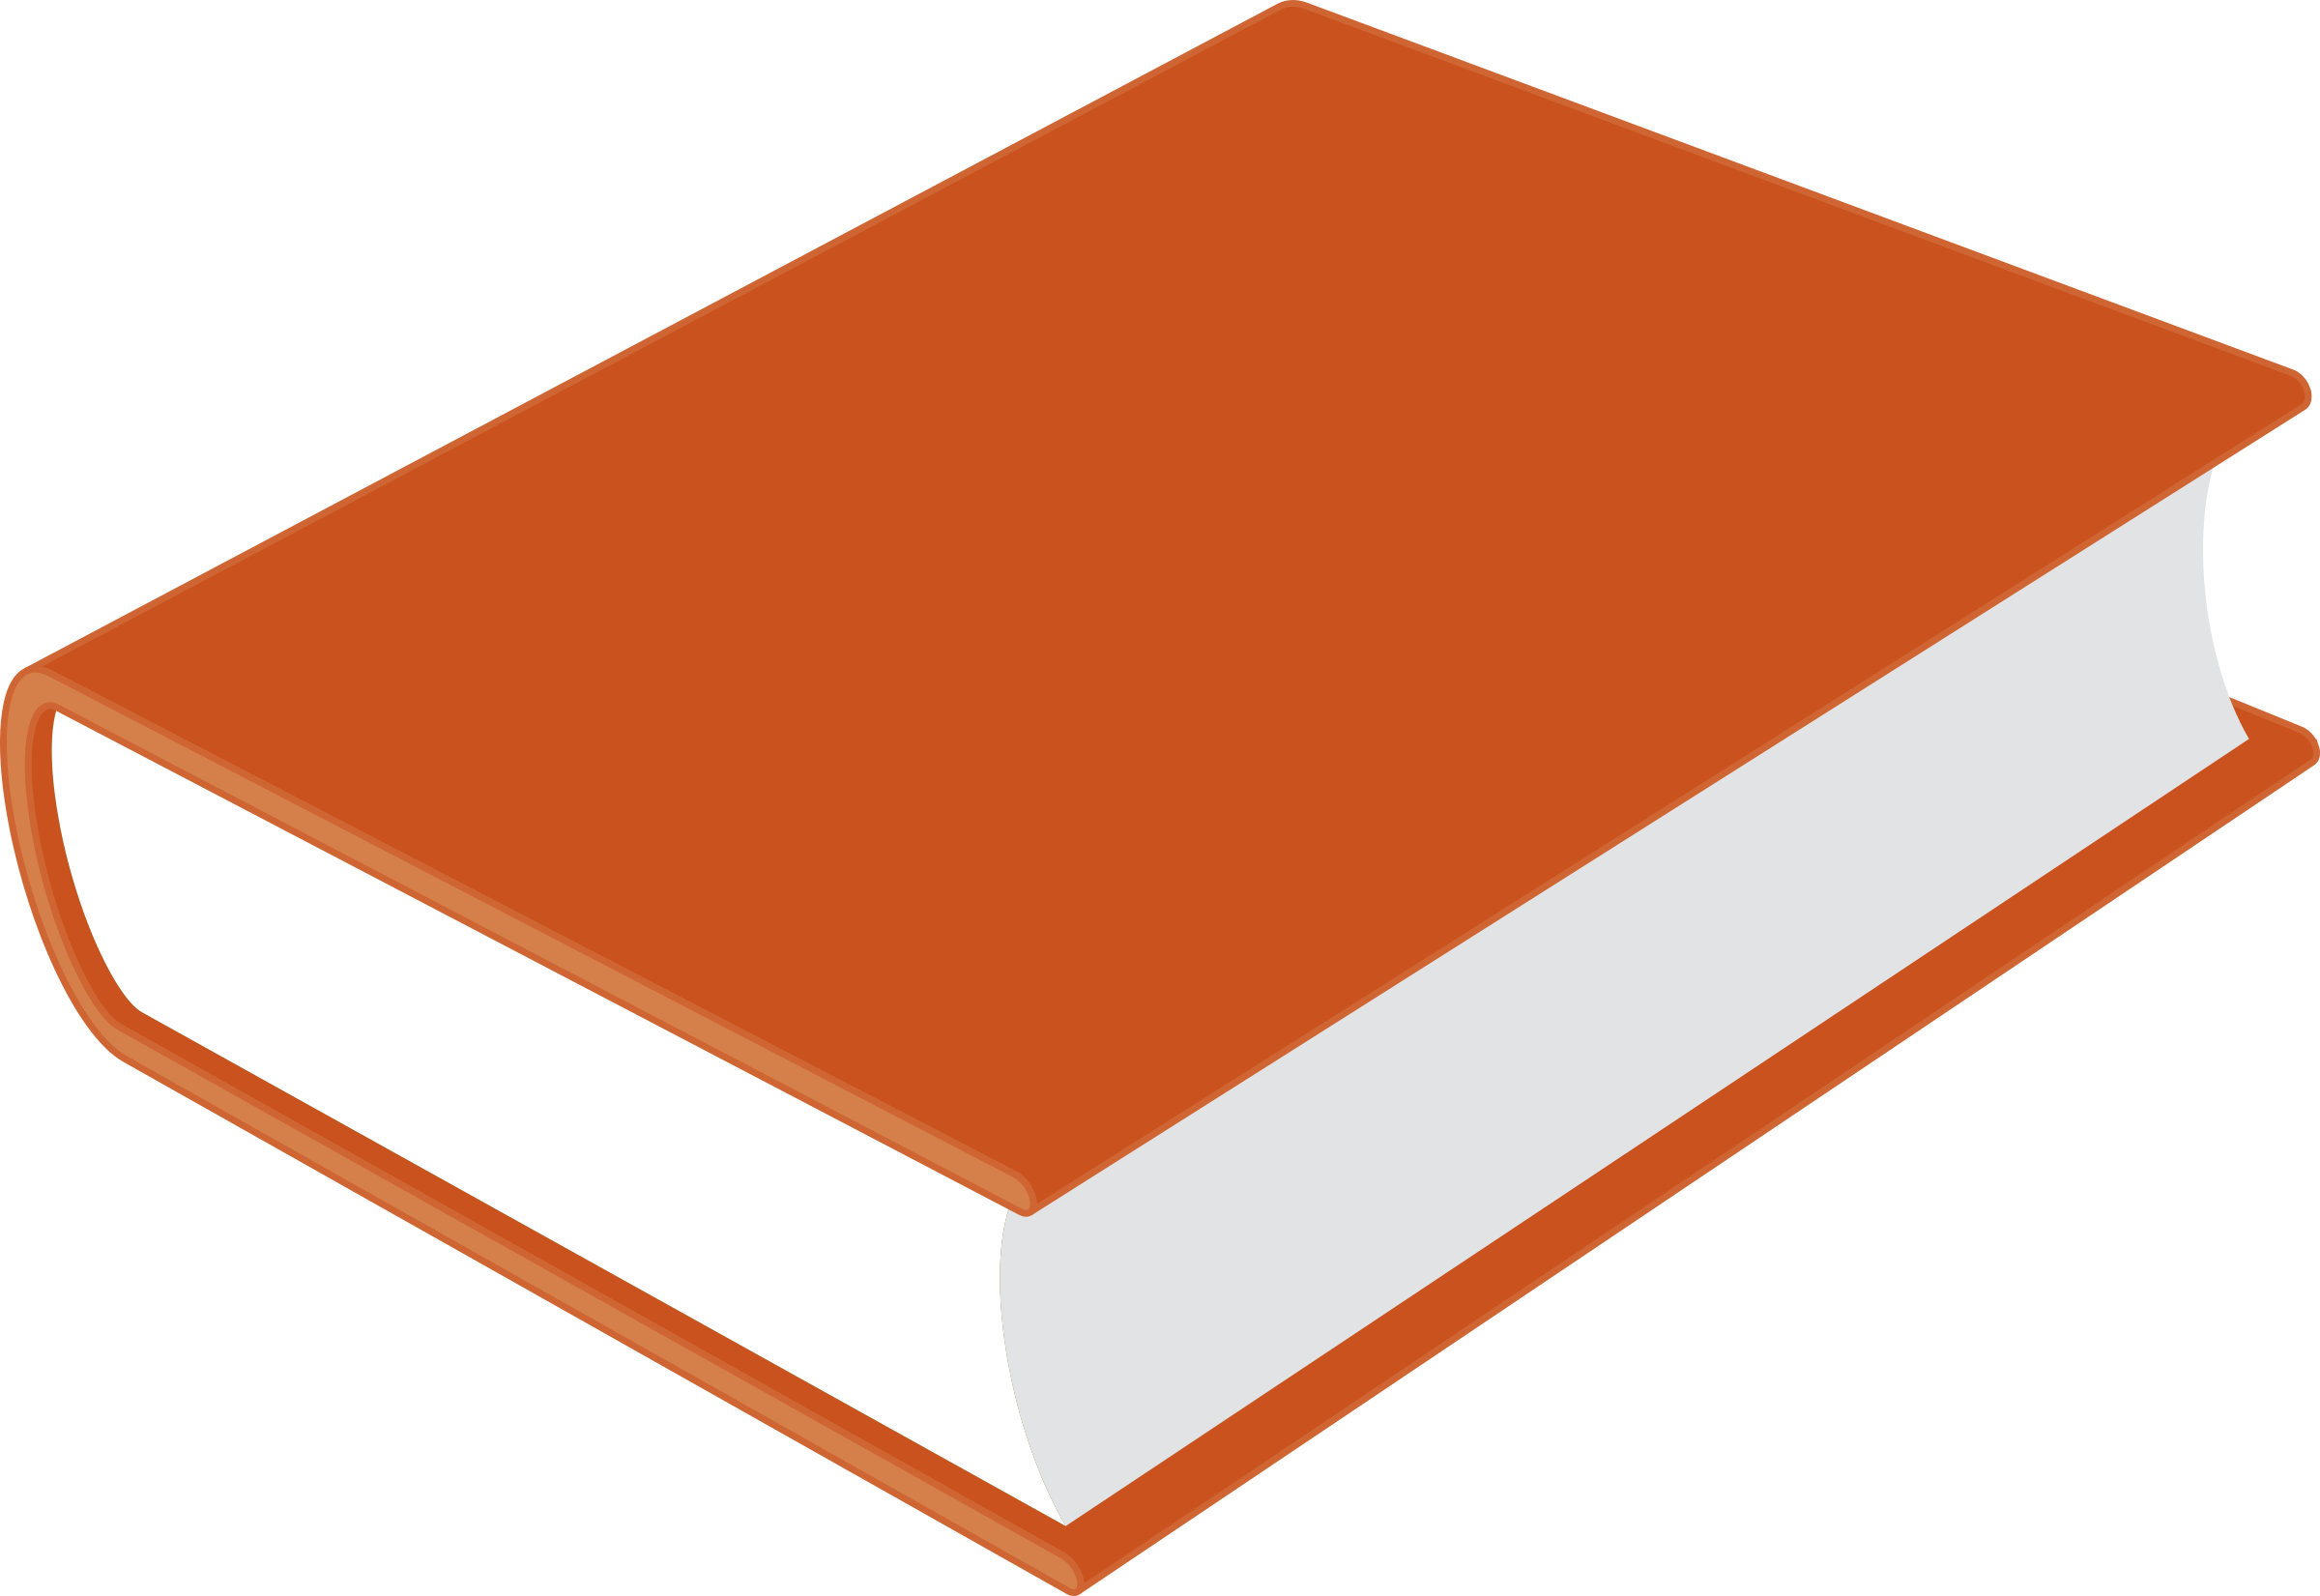 collection of transparent. Textbook clipart thick book